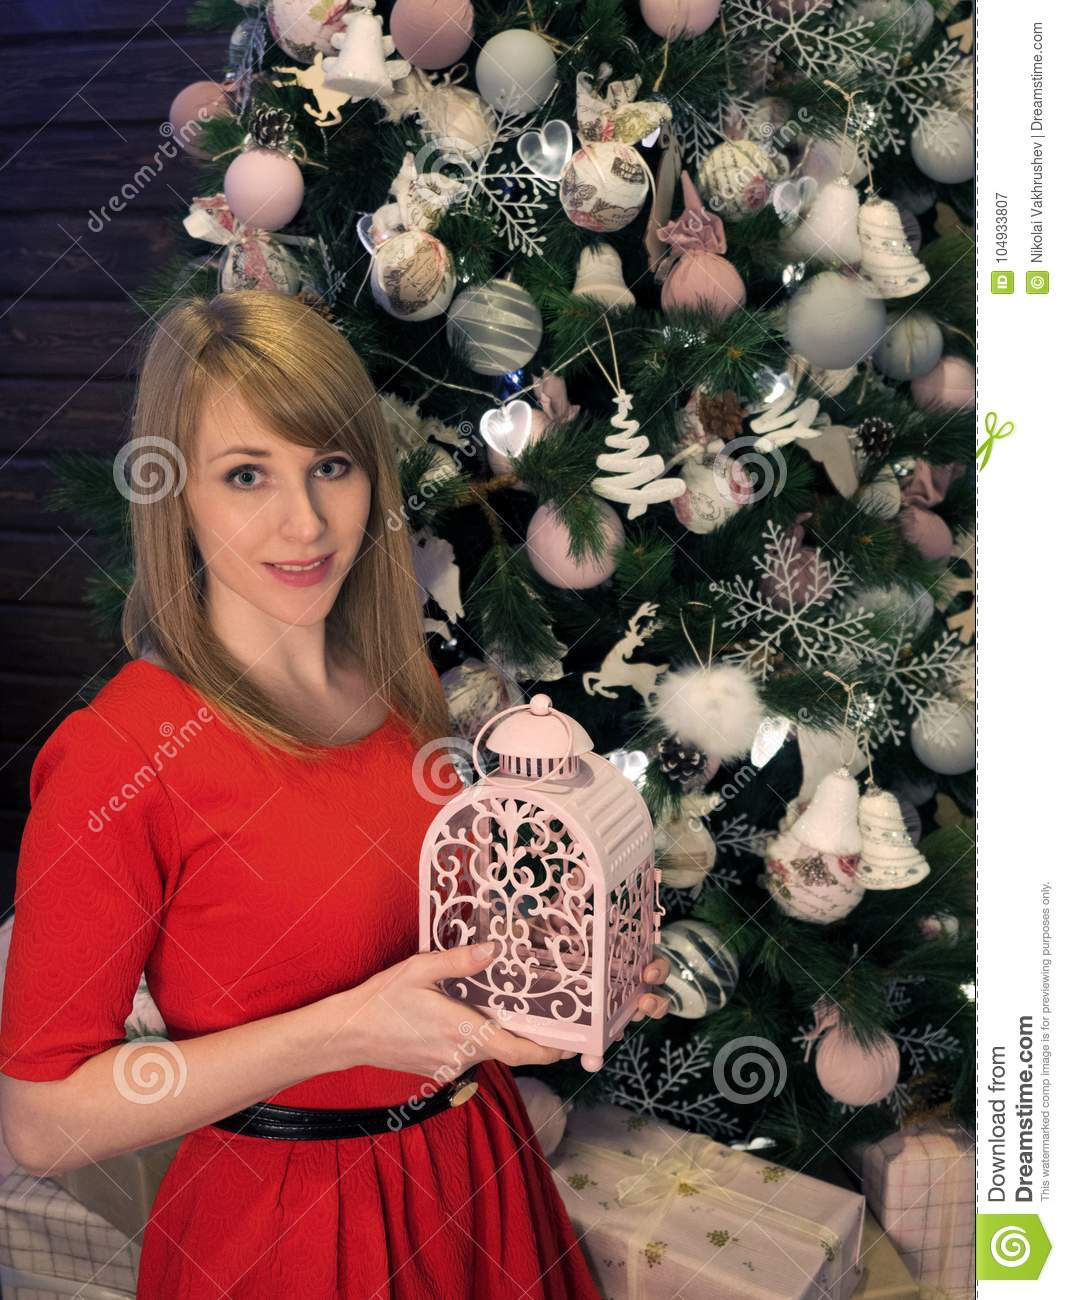 Beautiful blonde girl in red dress and New Year presents. New Year mood and interior.